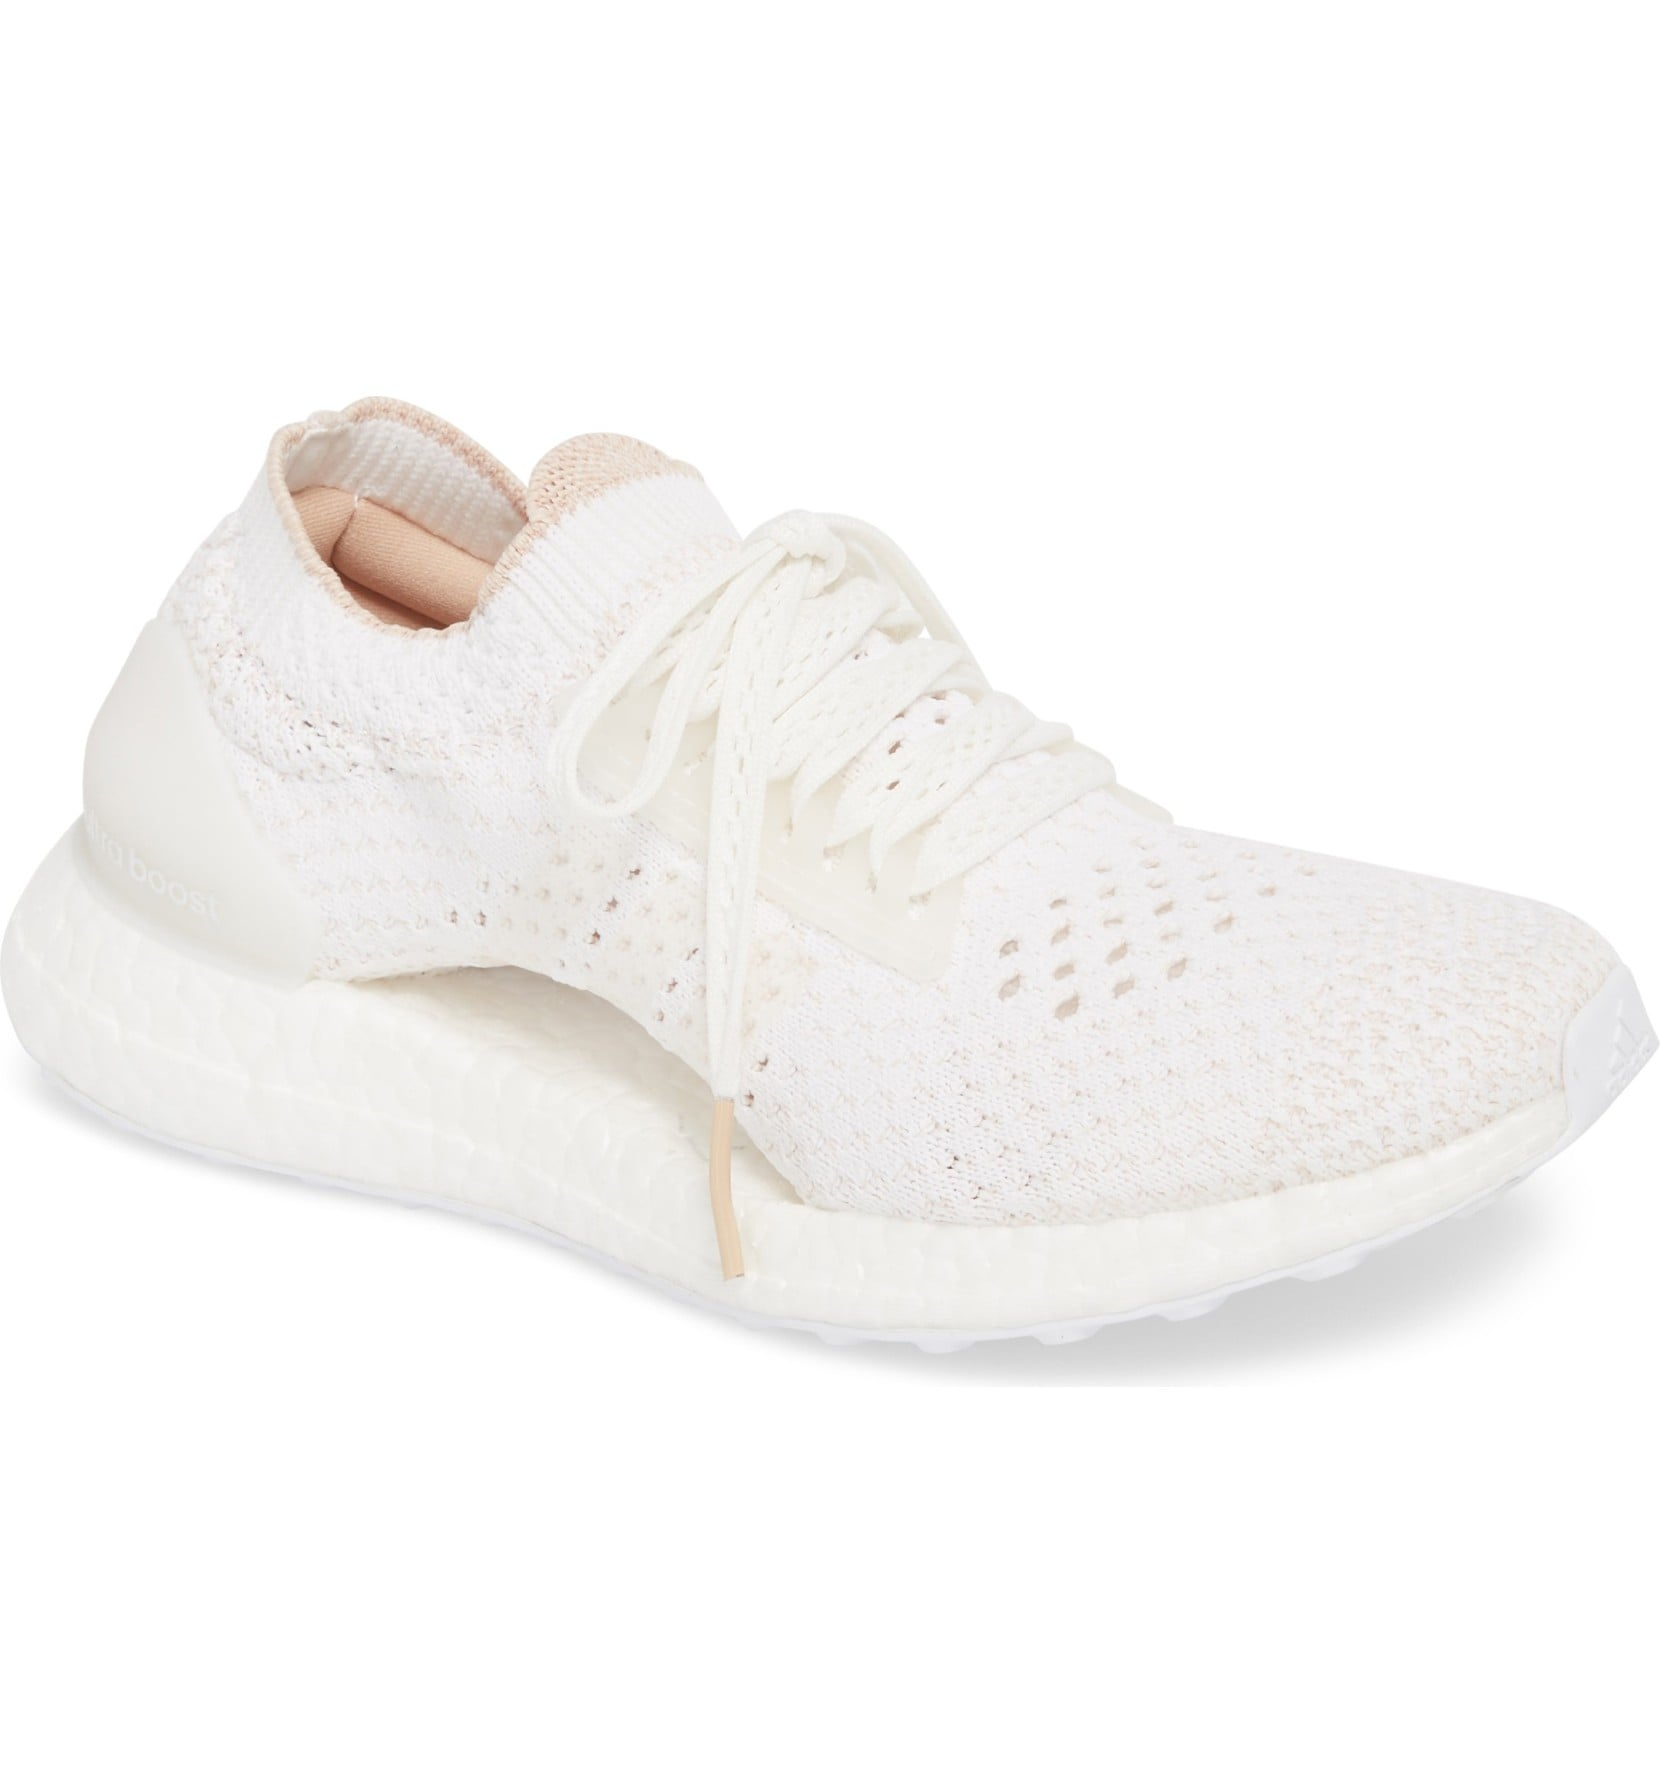 adidas ultraboost x clima shoes